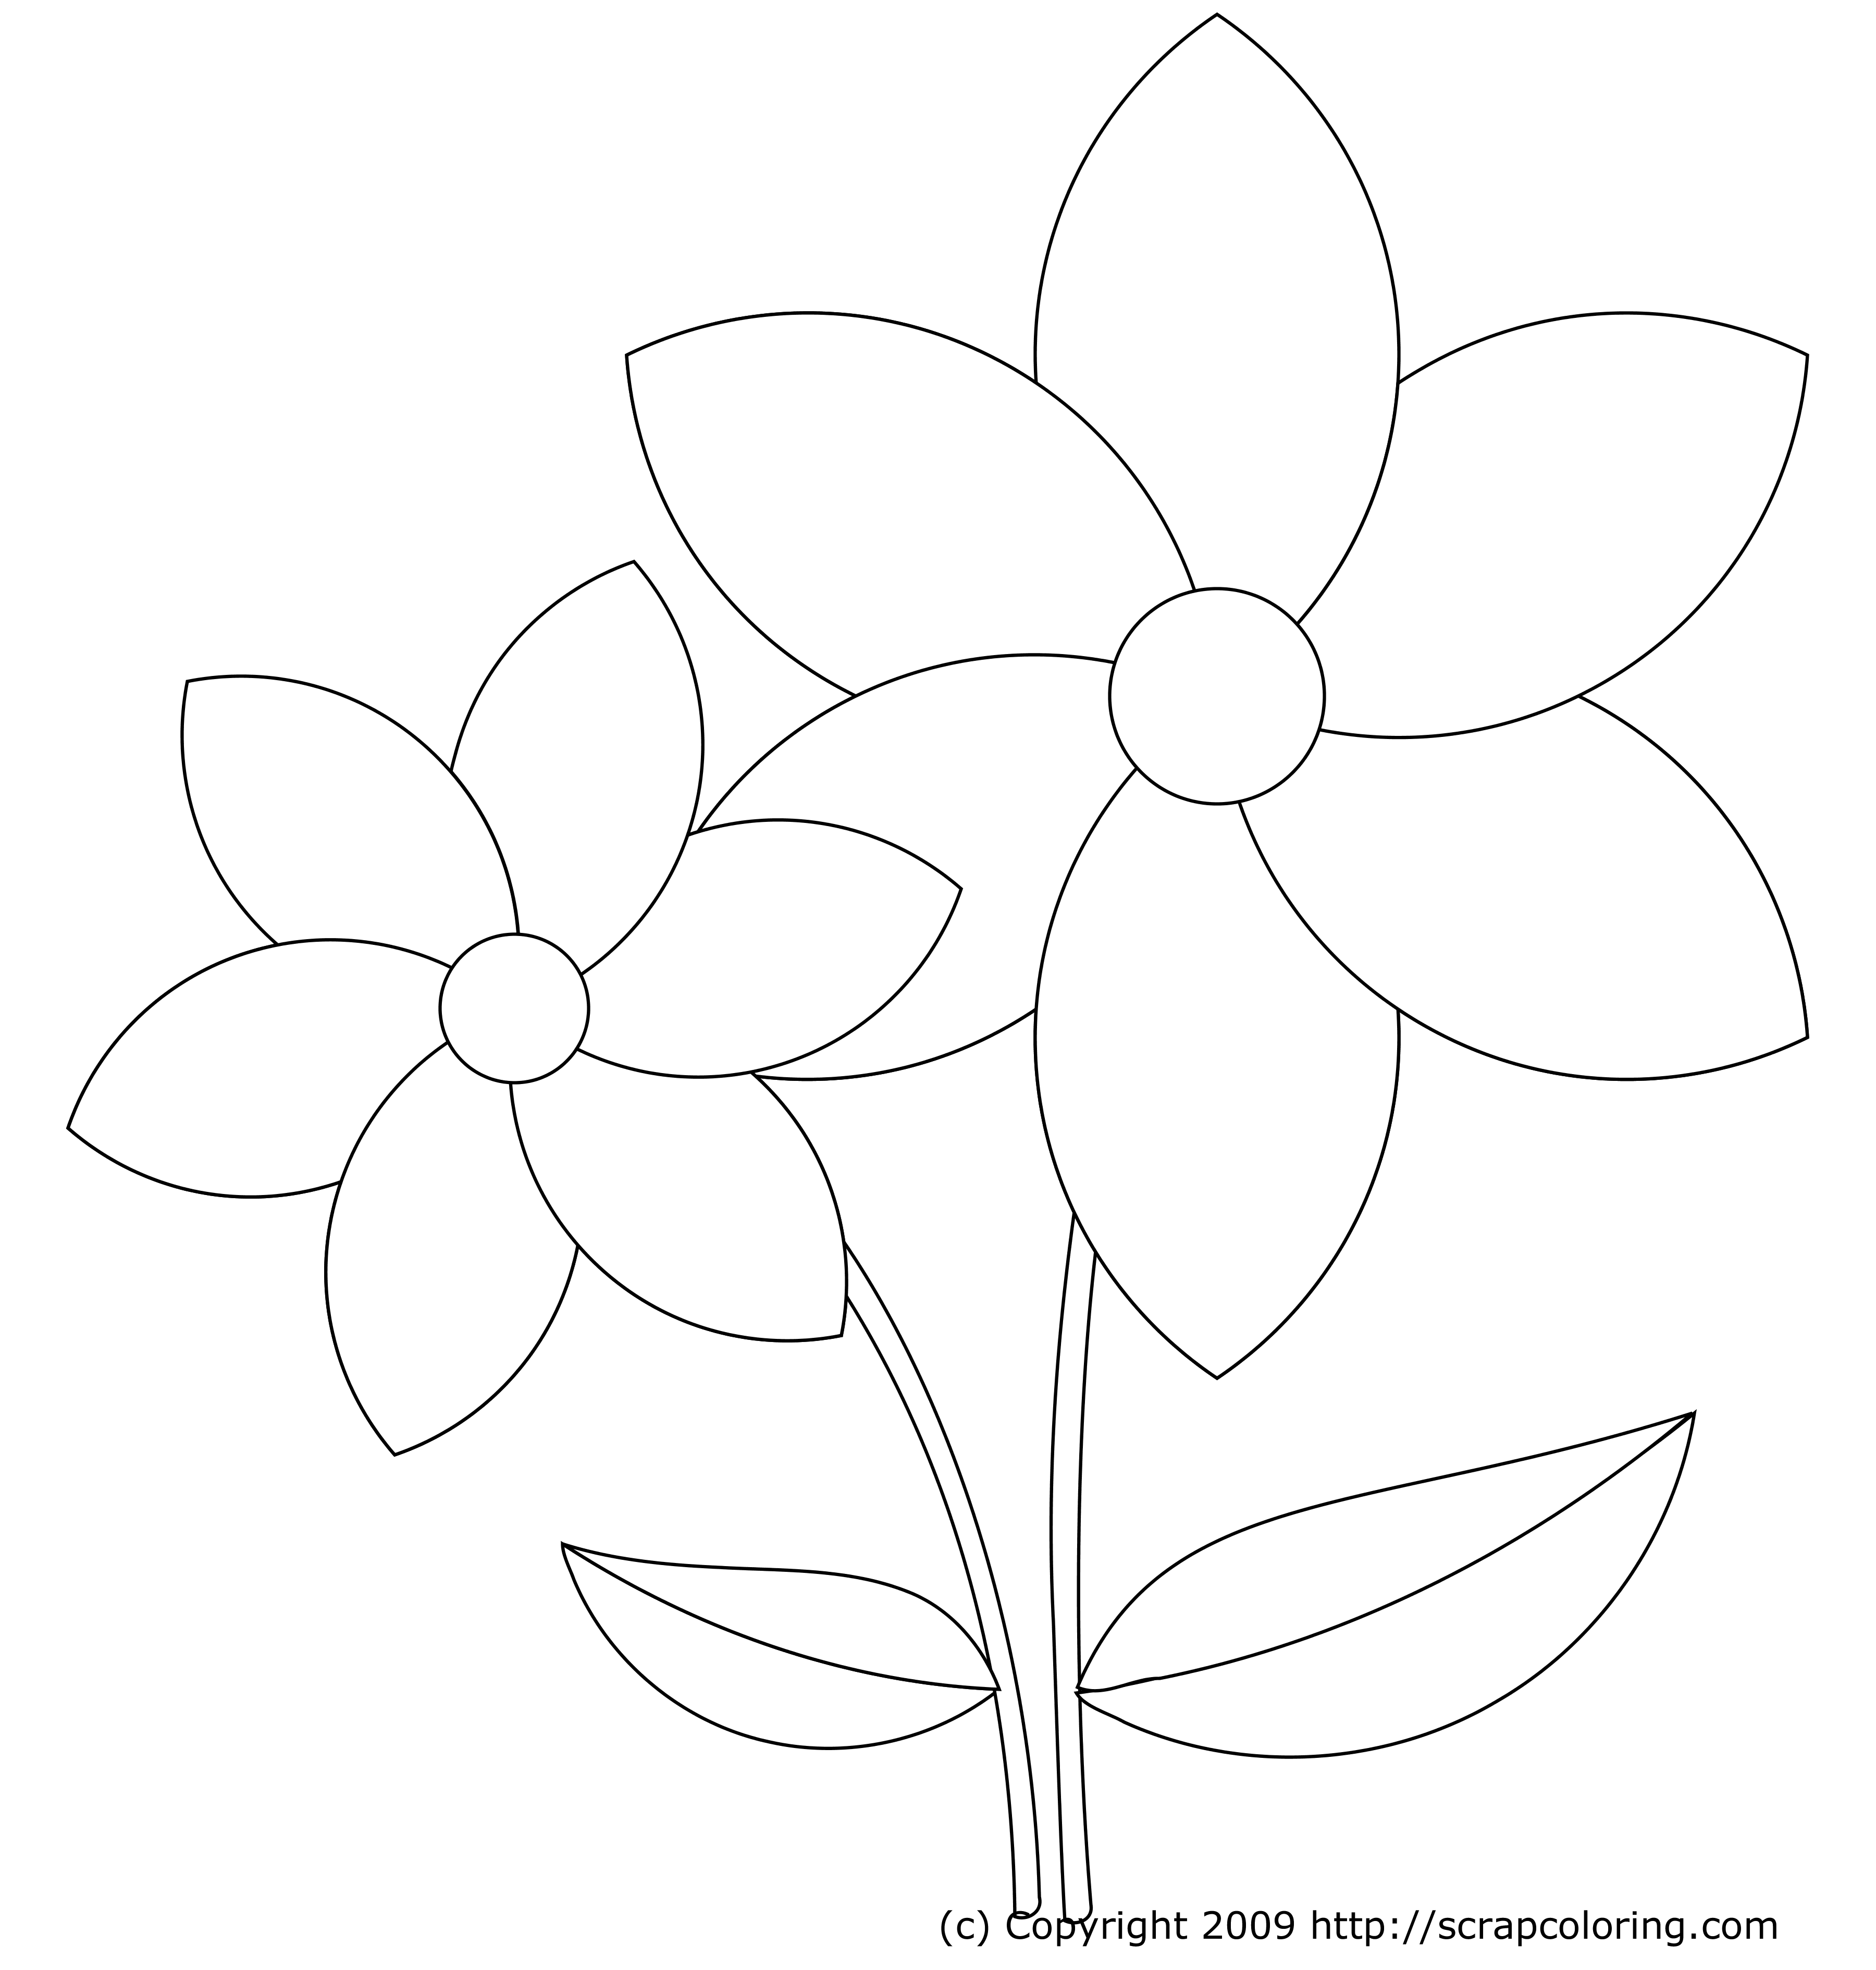 coloring pages flower petals - photo#33